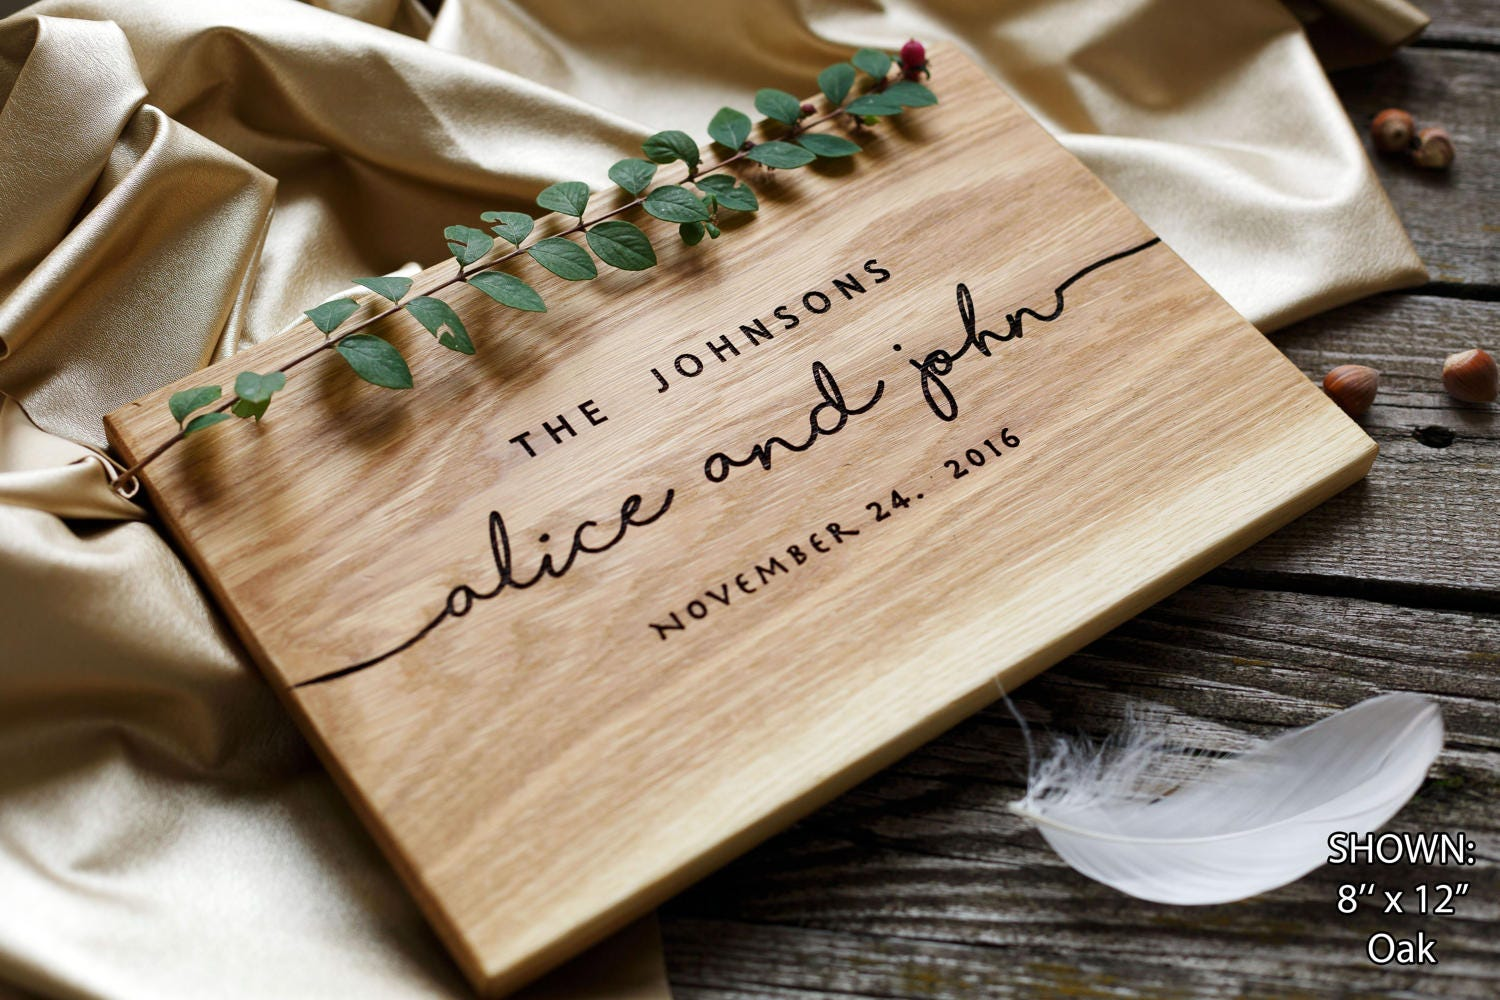 Wedding Gift Personalised: Wedding Gift Personalized Cutting Board Gift For Couple Unique